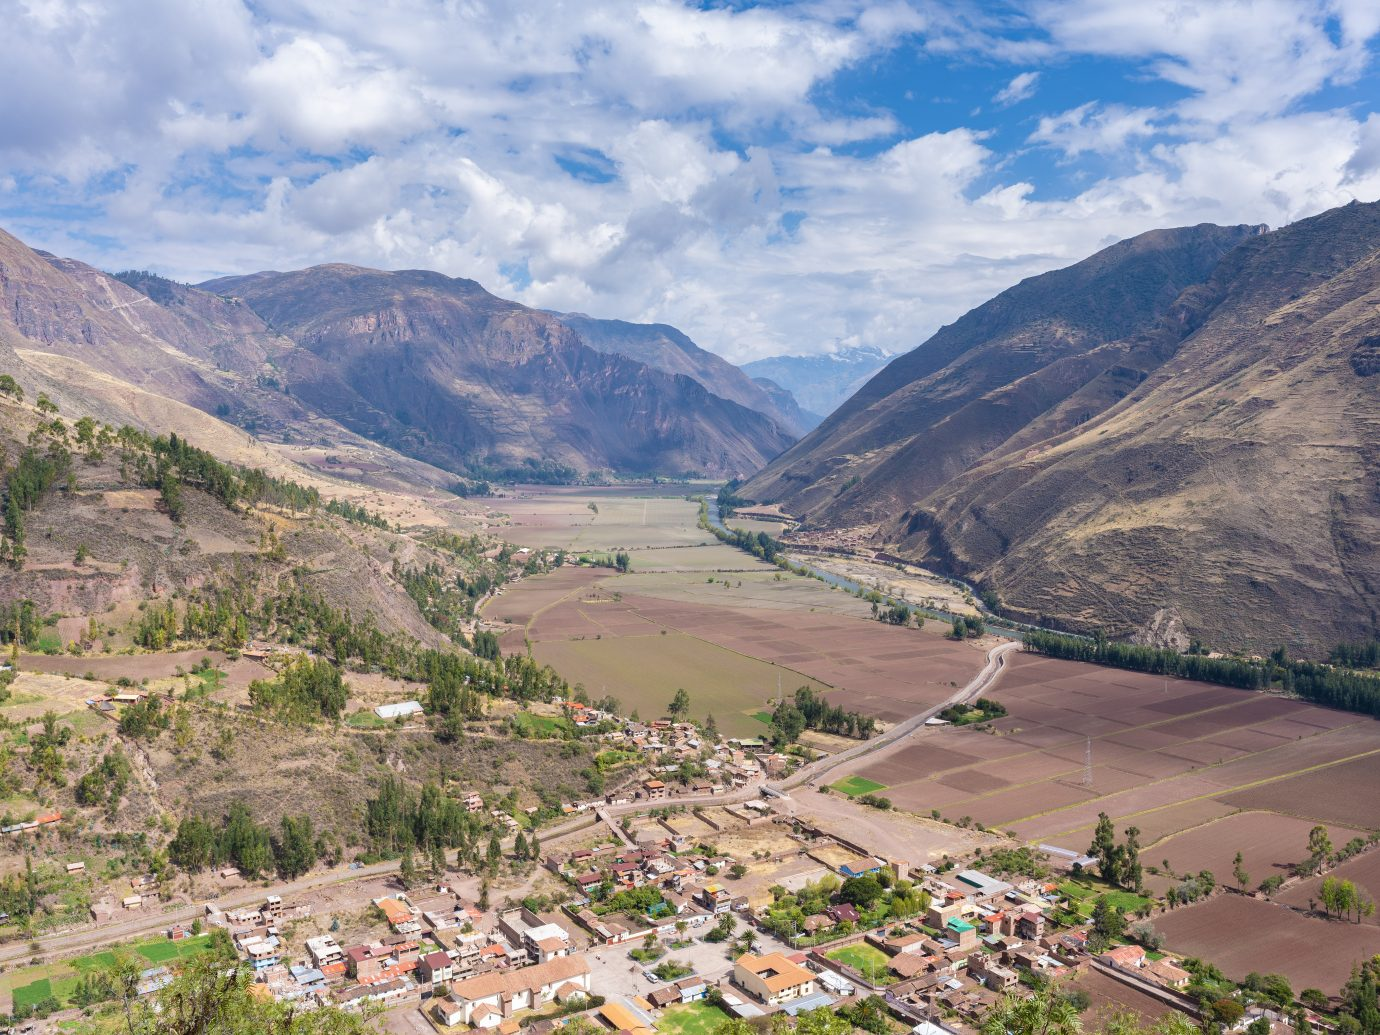 Aerial view of the Sacred Valley in Peru